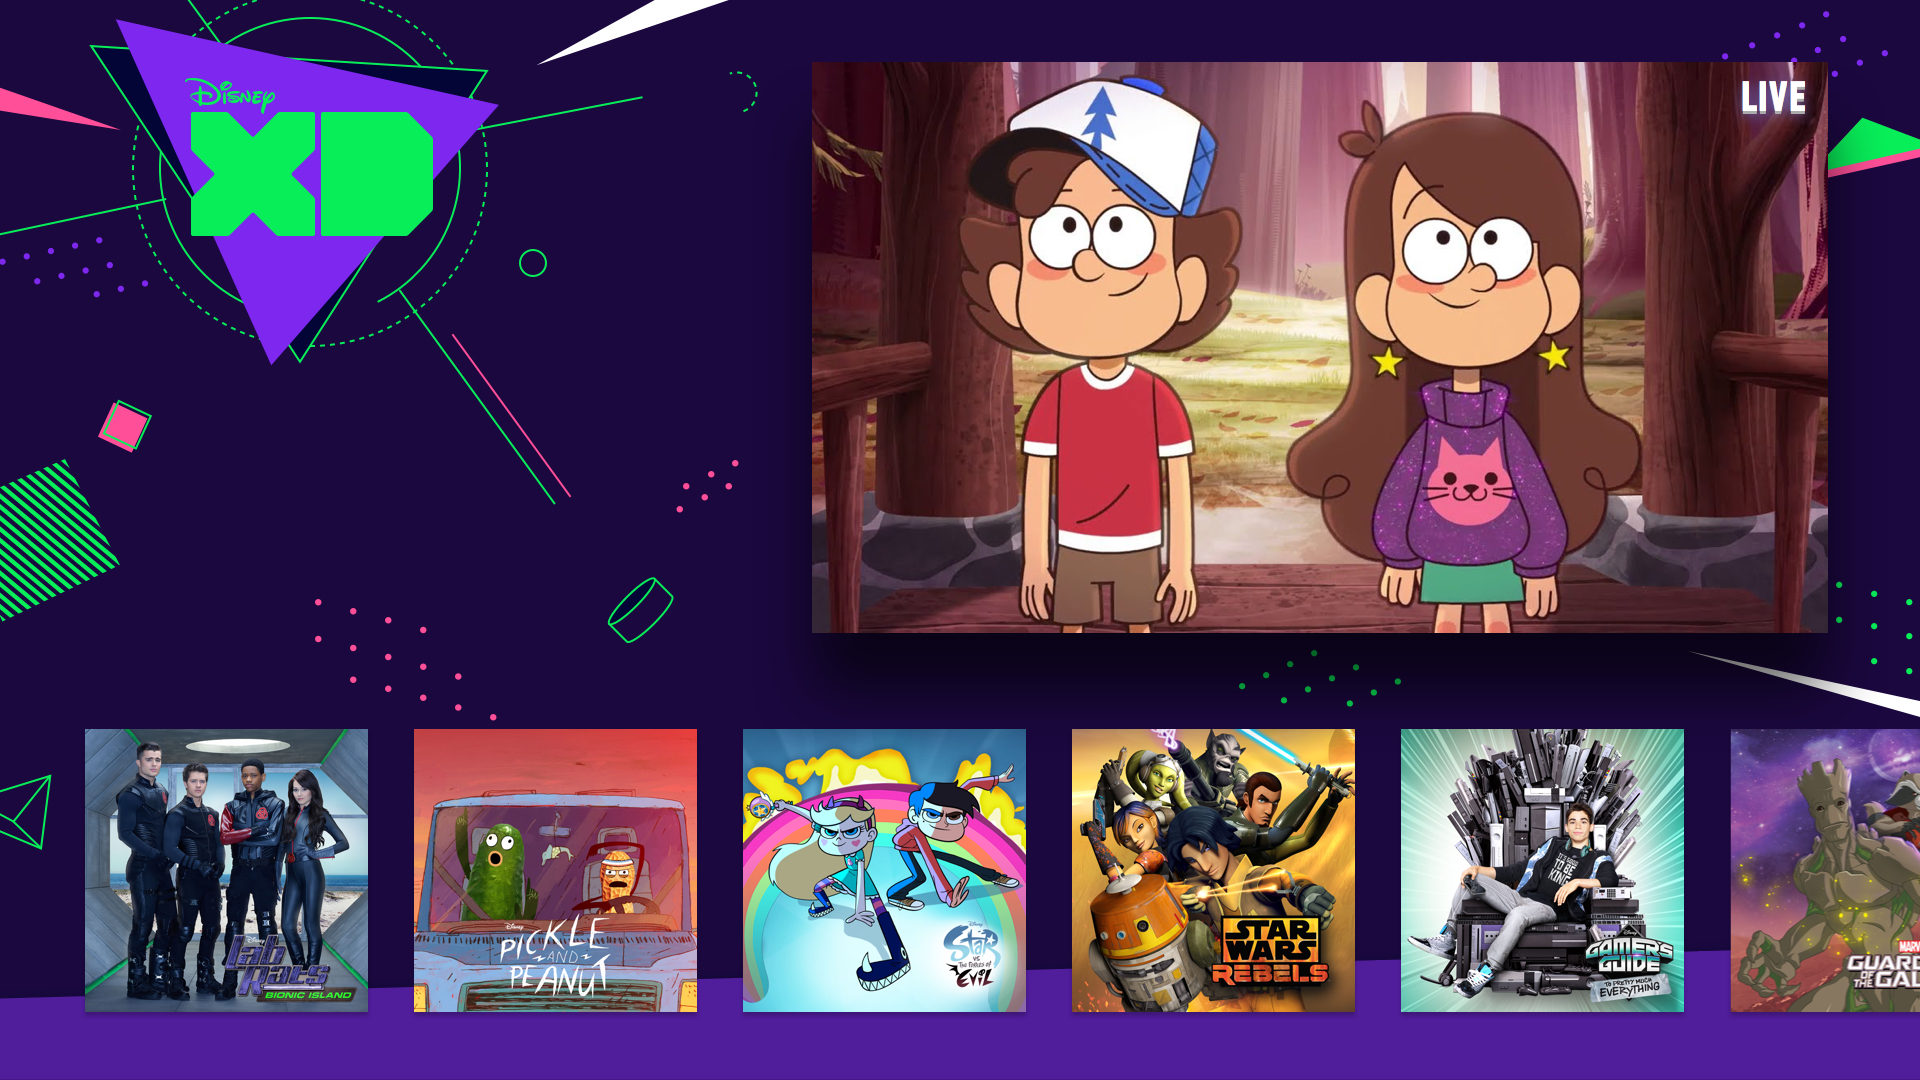 Disney XD – Watch Full Episodes, Movies & Live TV screenshot 9